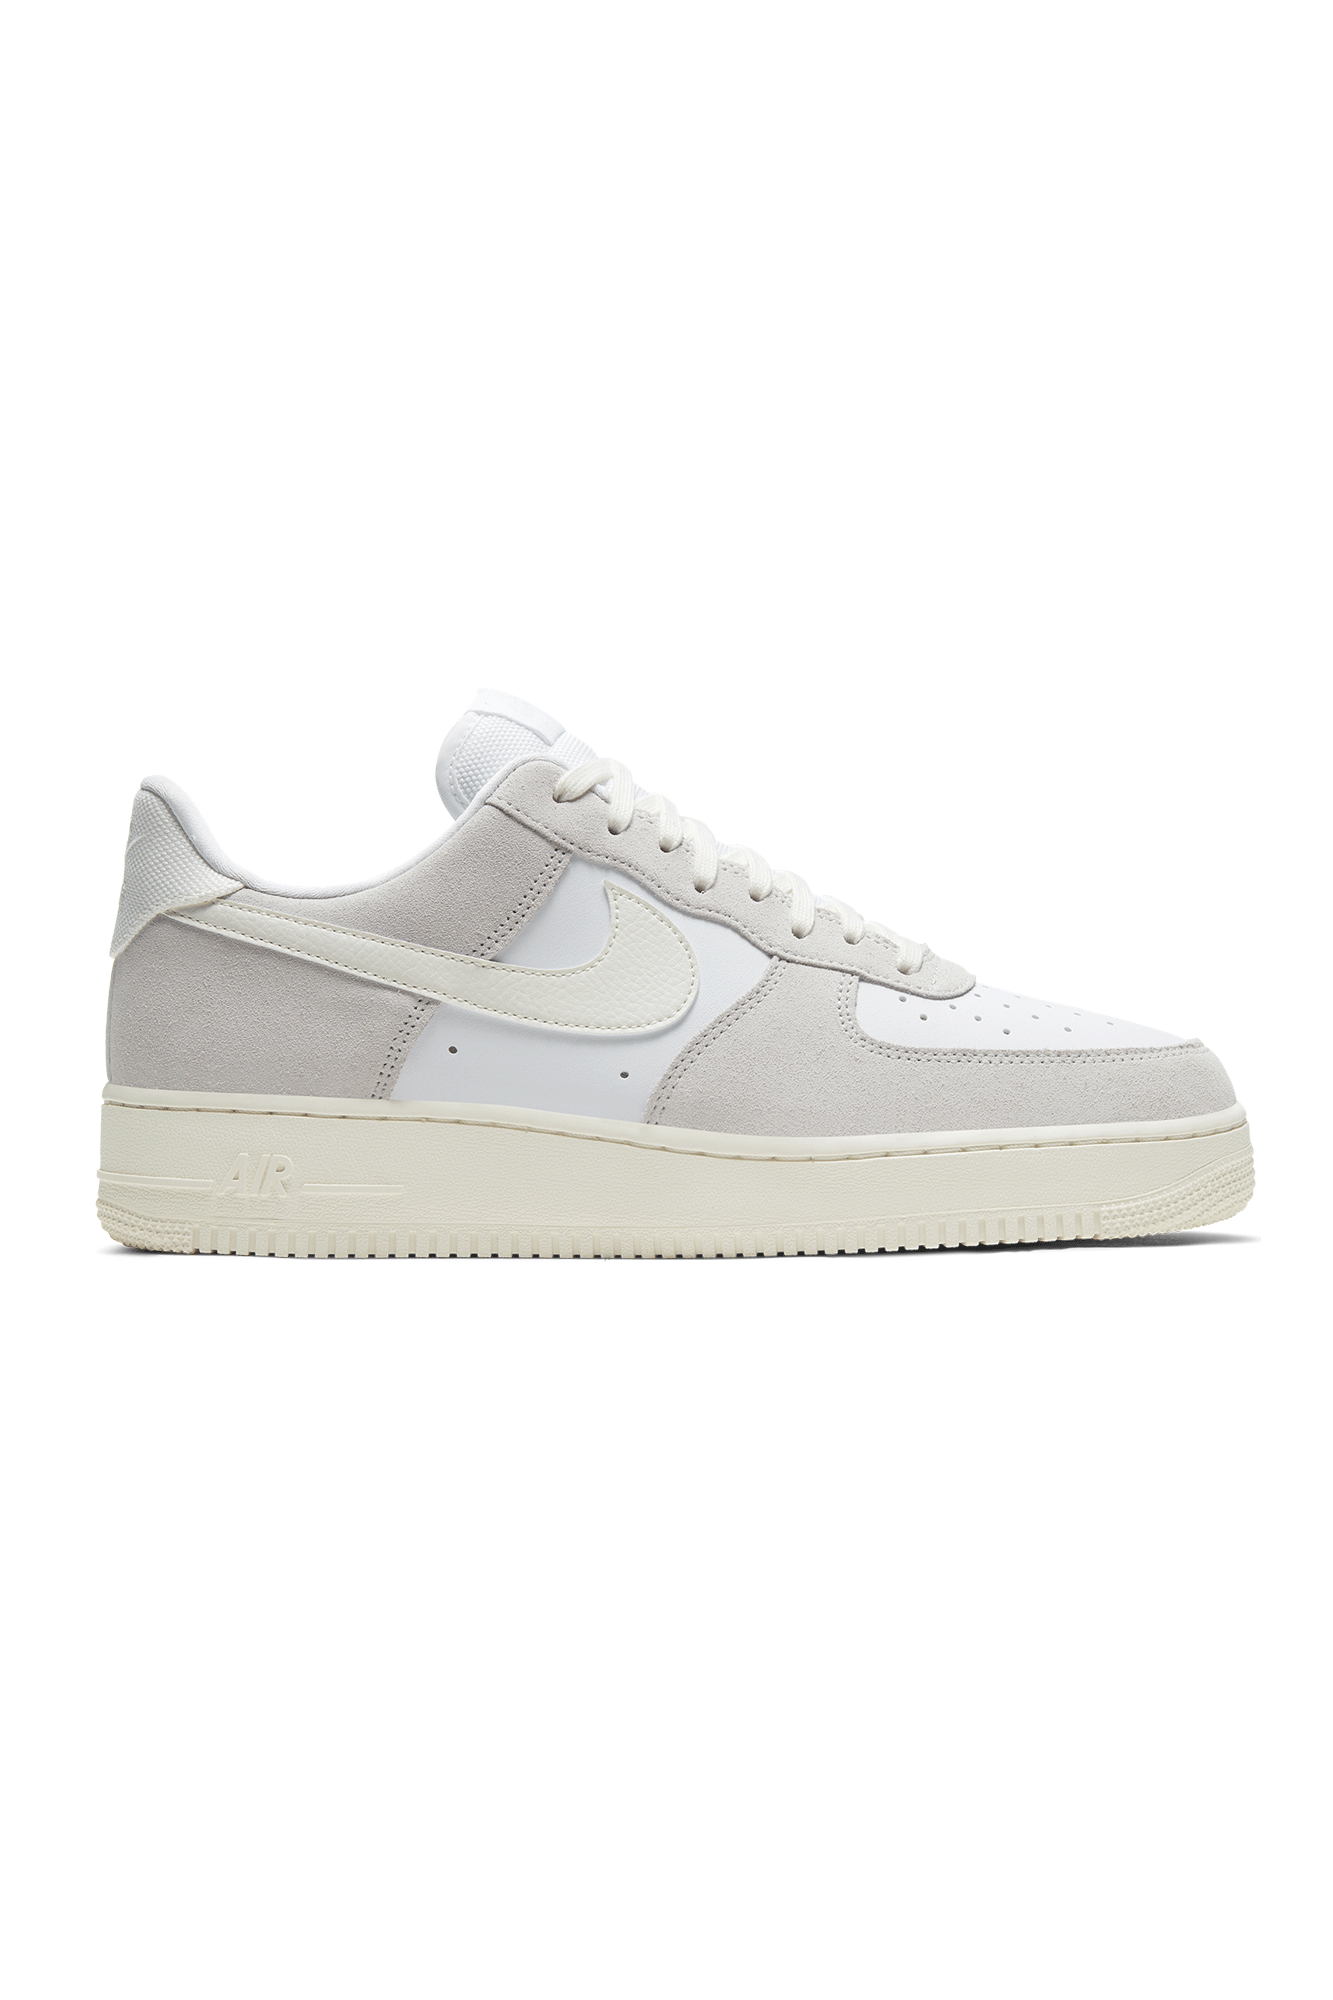 Nike Sneakers Air Force 1 LV8 White CW7584-#000#100#6 - One Block Down